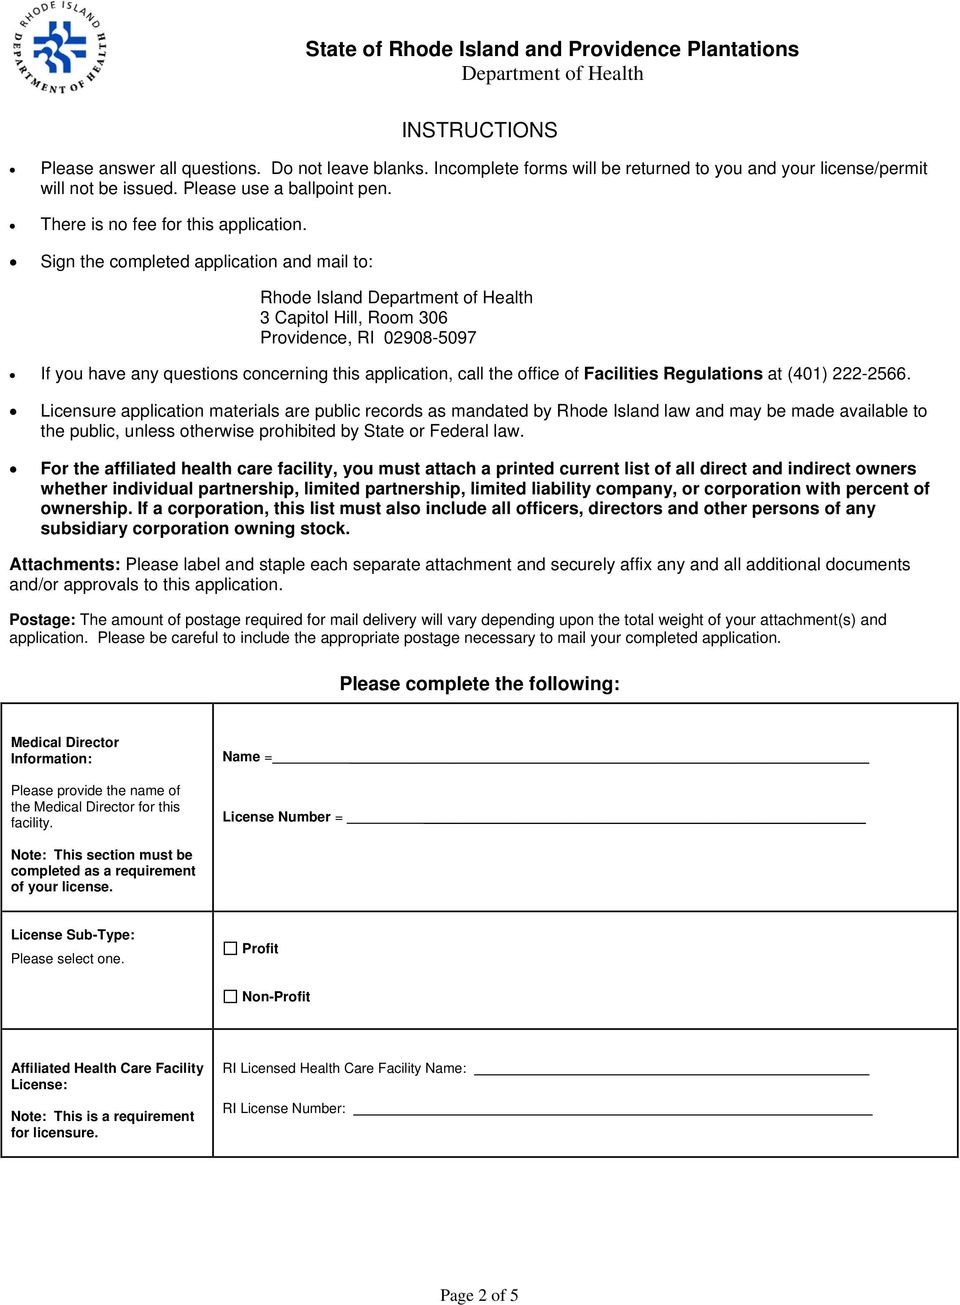 Sign the completed application and mail to: Rhode Island 3 Capitol Hill, Room 306 Providence, RI 02908-5097 If you have any questions concerning this application, call the office of Facilities